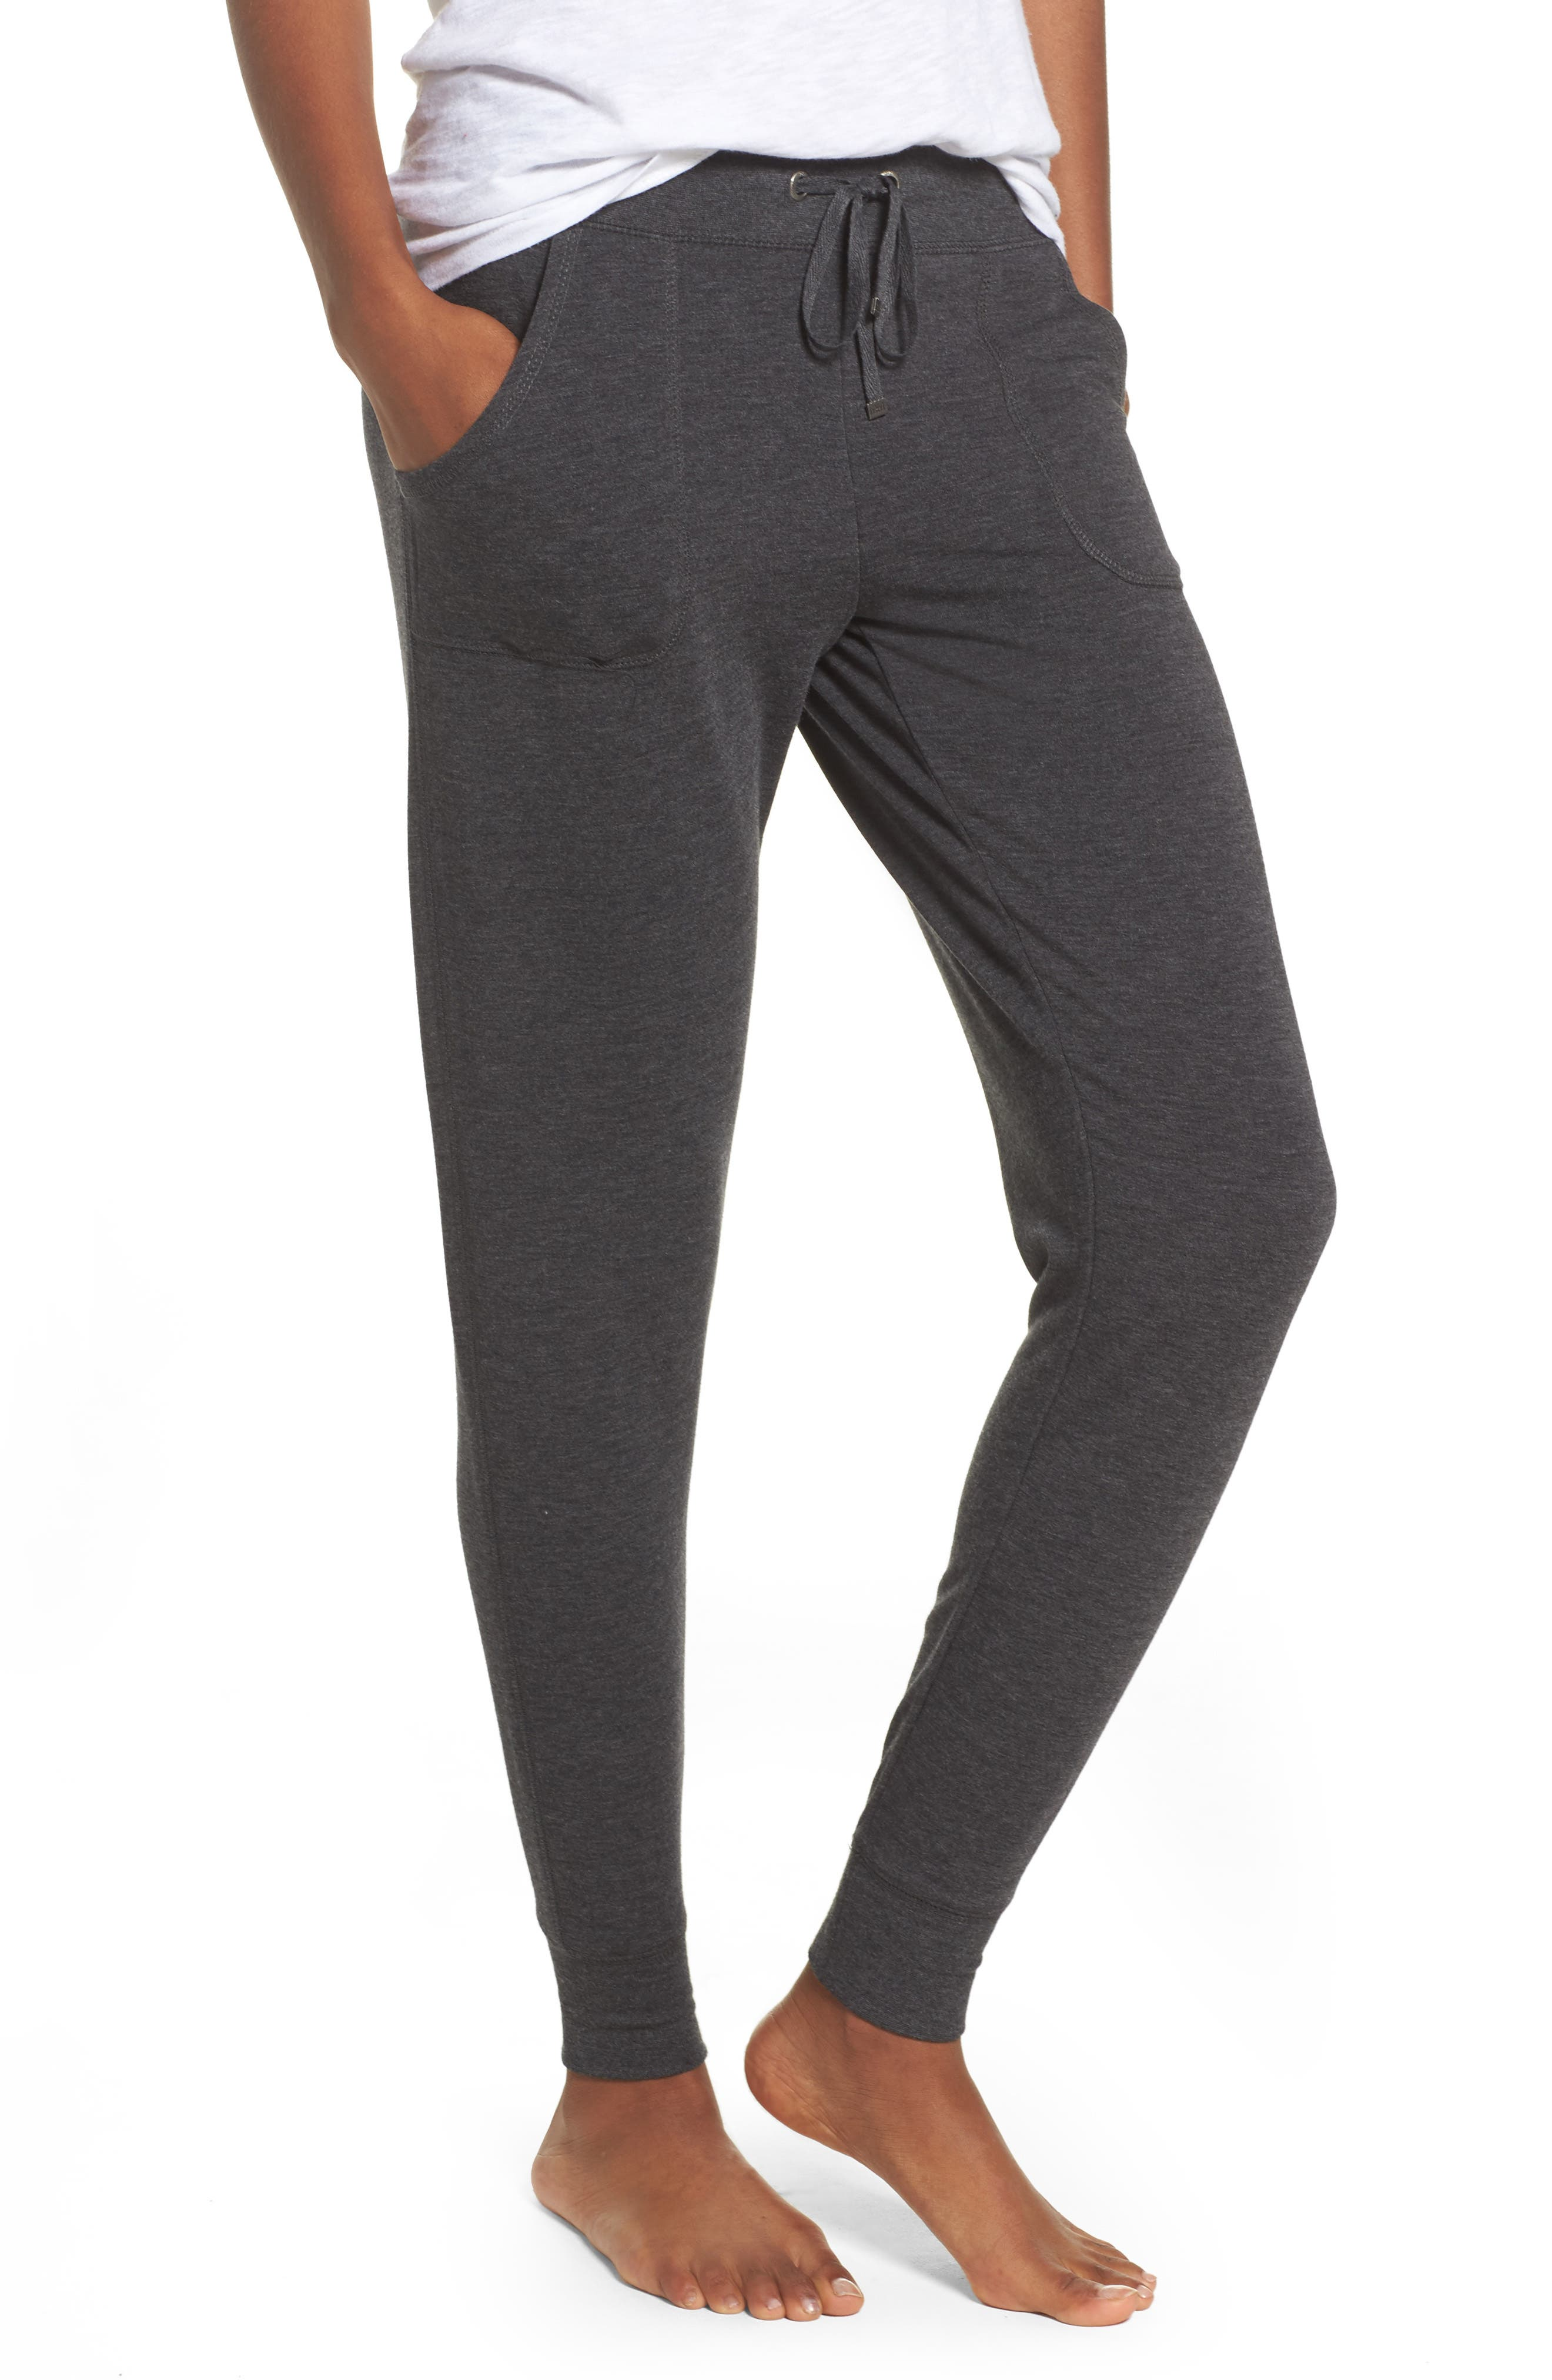 All About It Lounge Pants,                         Main,                         color,